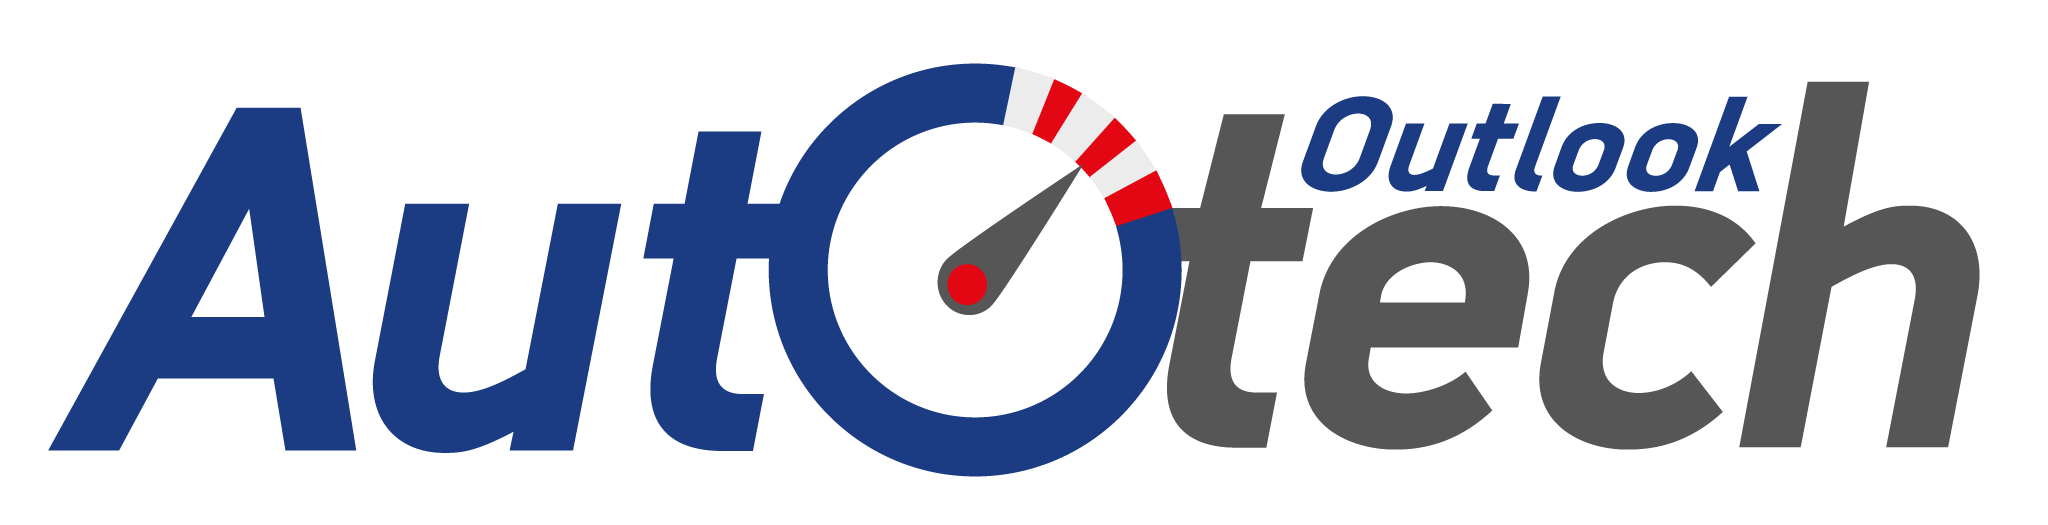 Auto Tech Outlook Logo